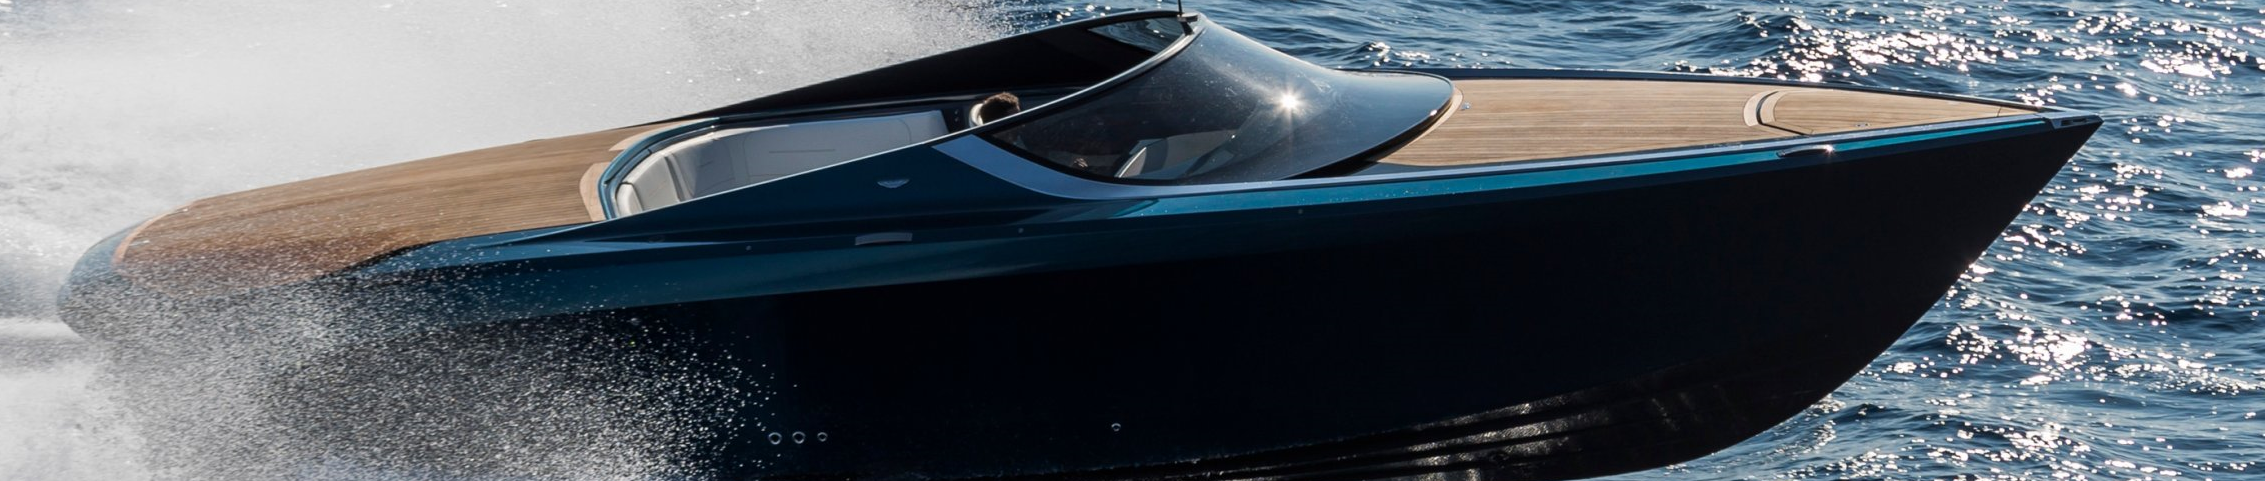 Just when you think that you have seen it all, Aston Martin has made the leap into luxury watercraft with the AM37. The name reflects the length of the vessel that is specifically designed to cater to those that appreciate the Aston Martin brand and share a love for watercraft. AM37 is a wooden decked powerboat utilizing twin Mercury 520 hp V8 engines for a combined power output of 1040 hp.